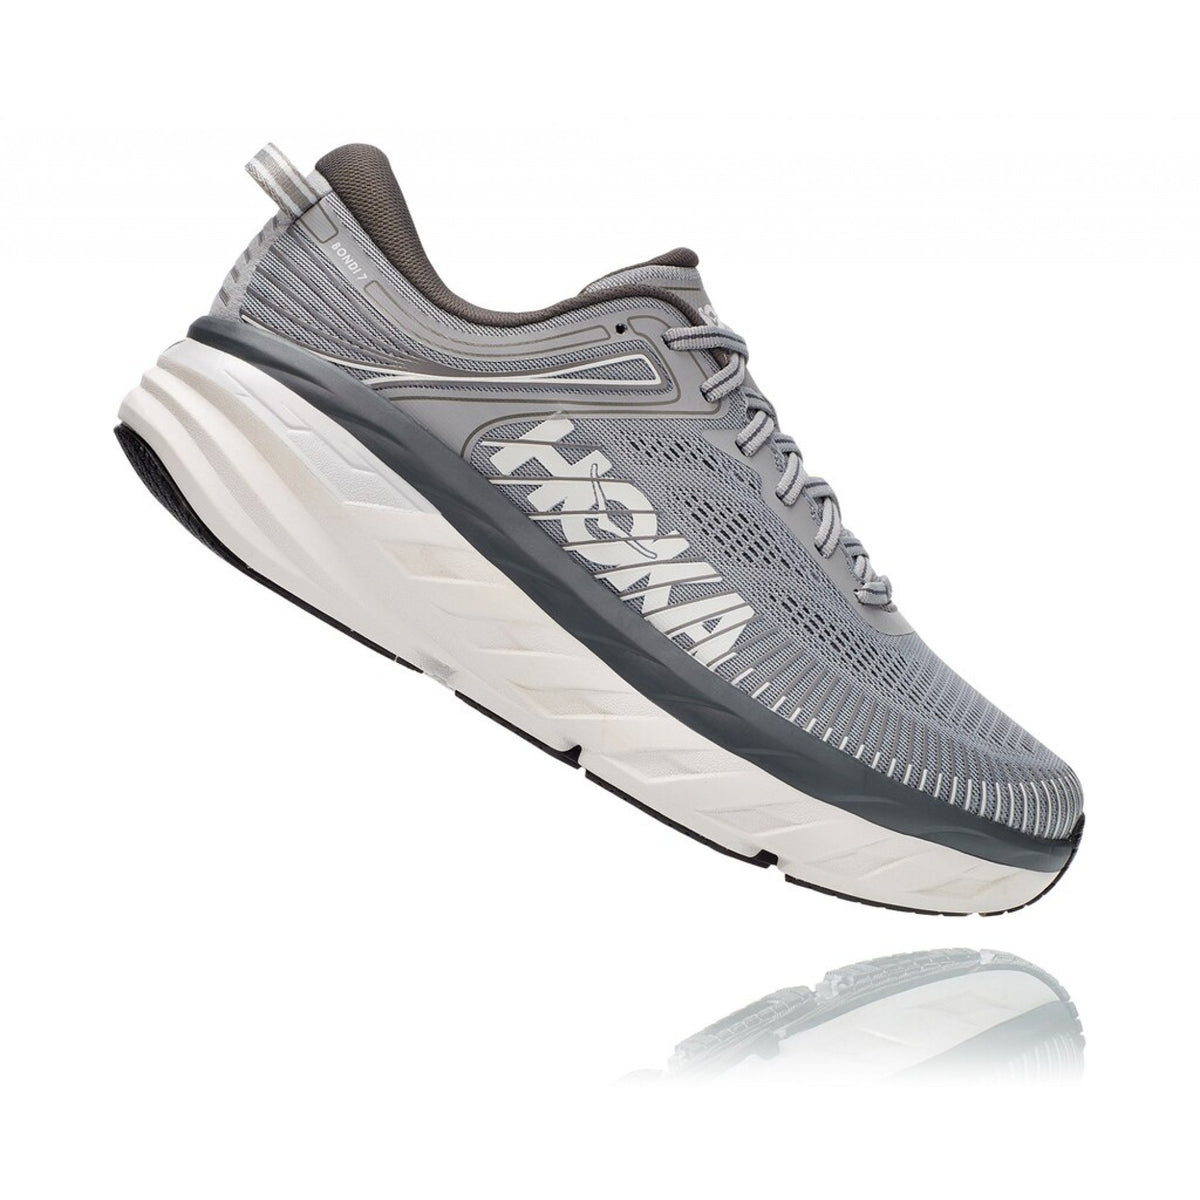 Hoka One One Bondi 7 Wide (2E) Mens